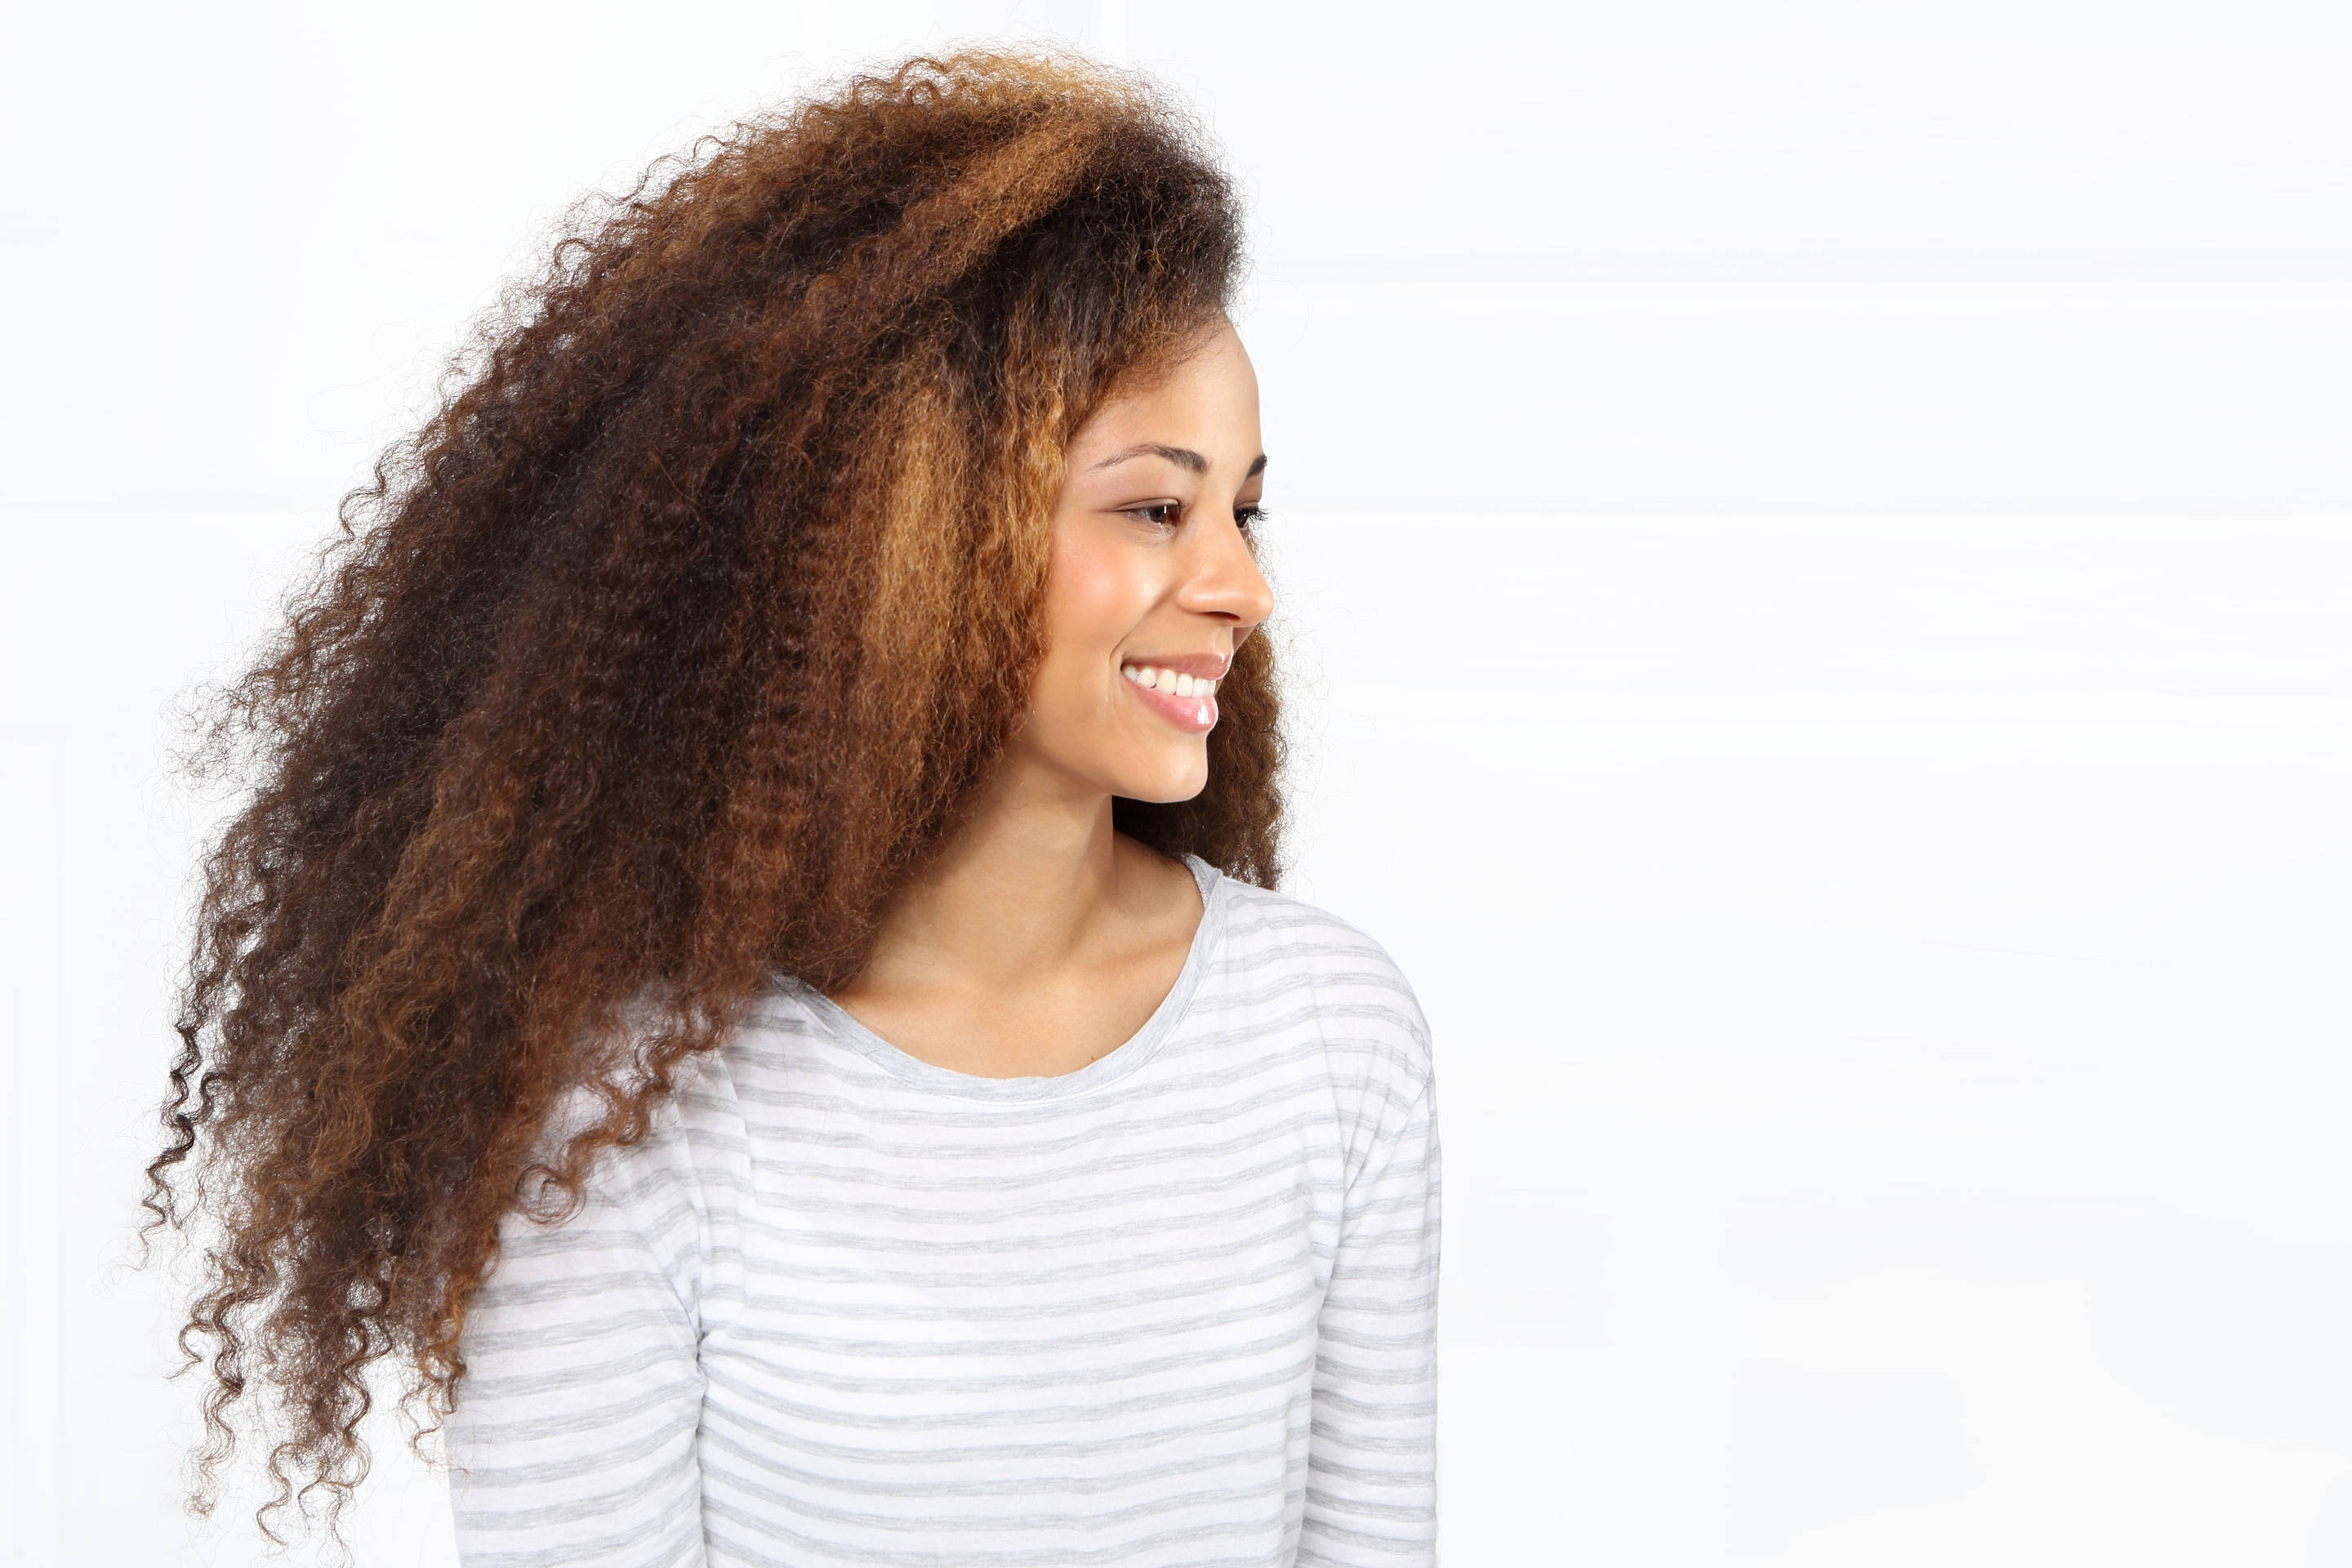 MyCurlsCan 5 Versatile Haircuts For Naturally Curly Hair